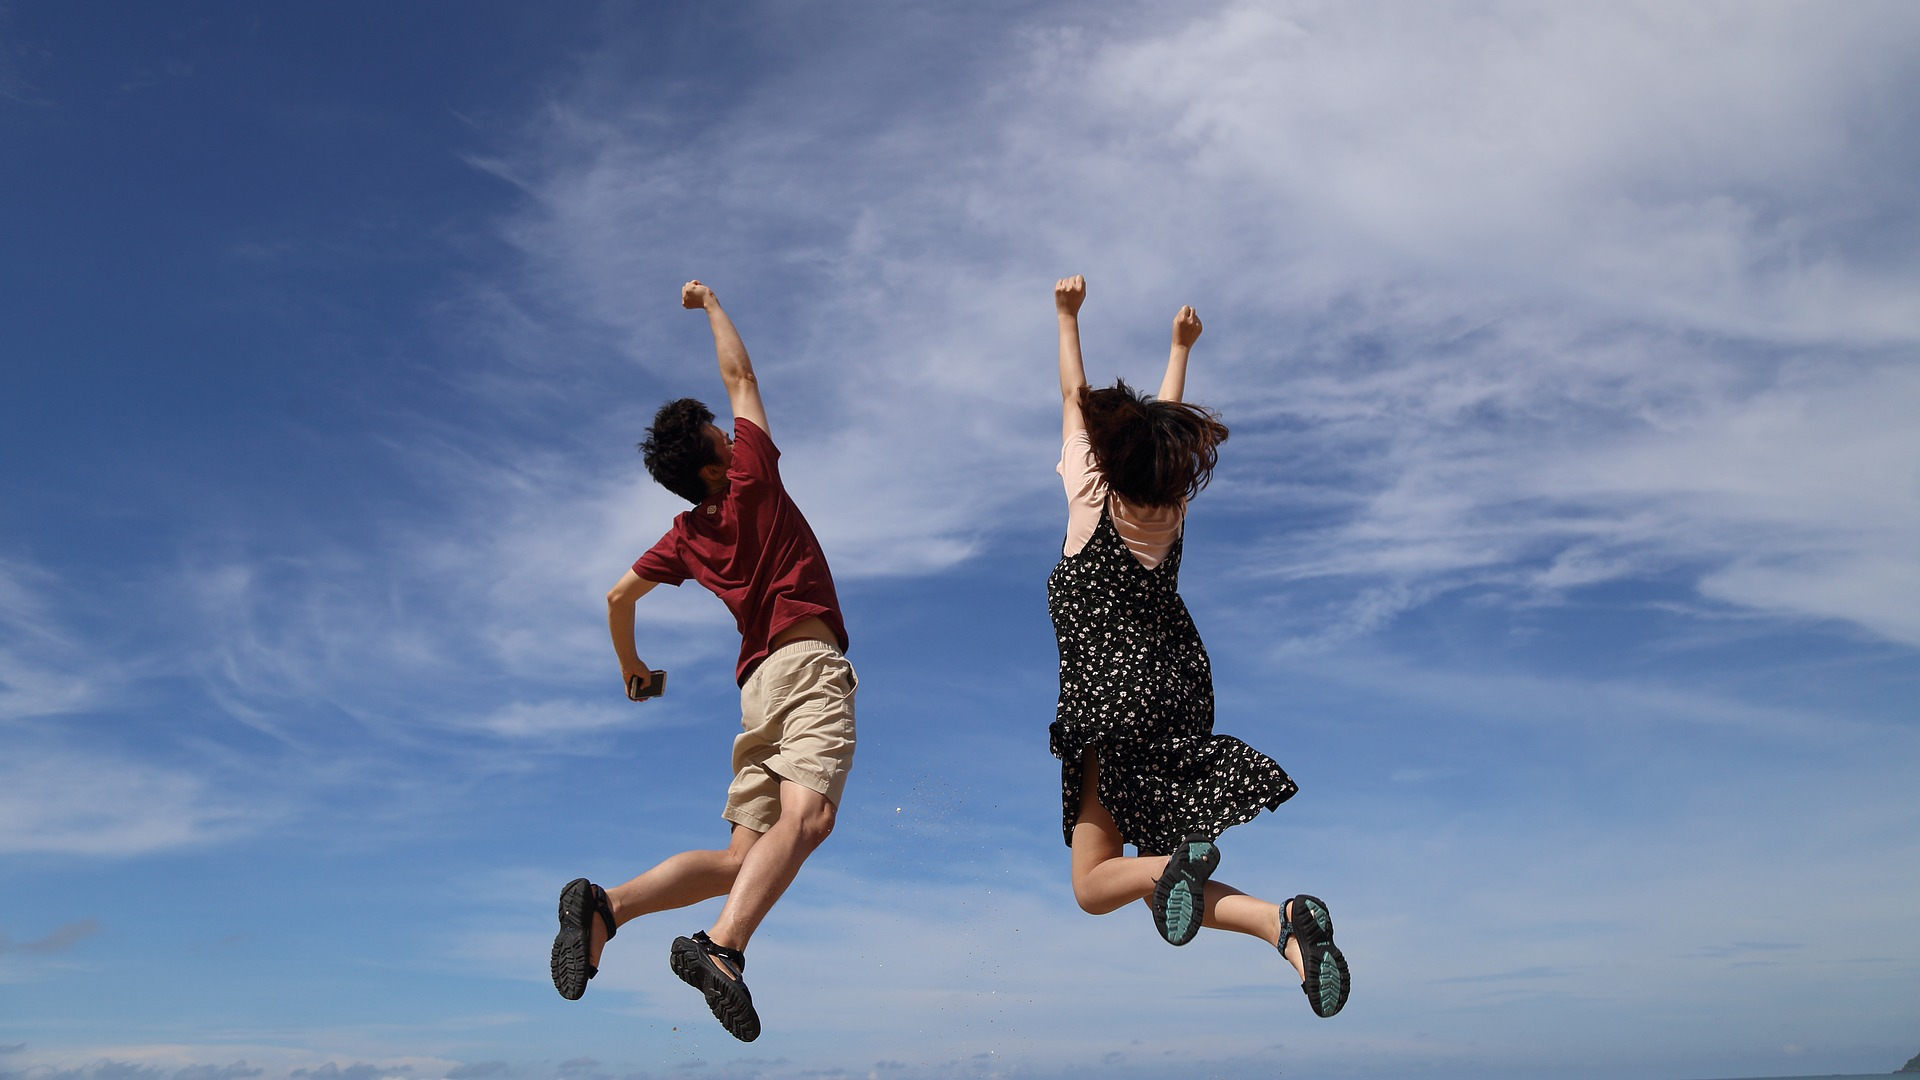 A man and a woman jump triumphantly into the air against a blue sky with wispy white clouds.